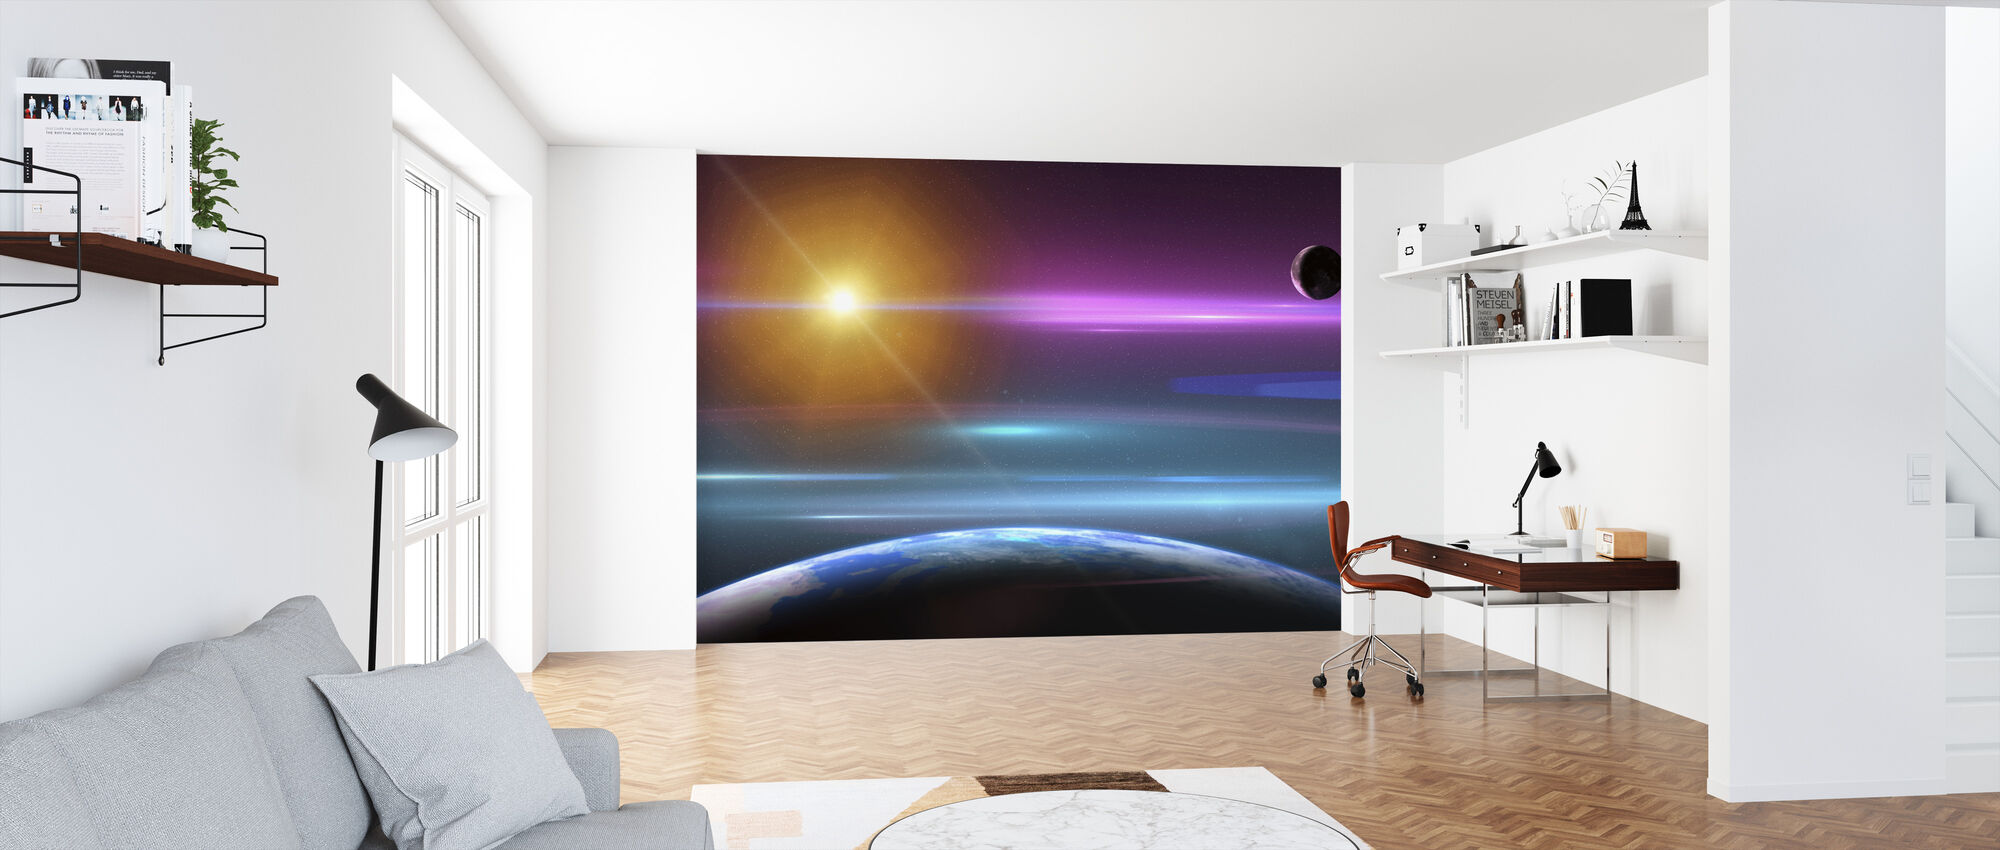 Amazing Space - Wallpaper - Office